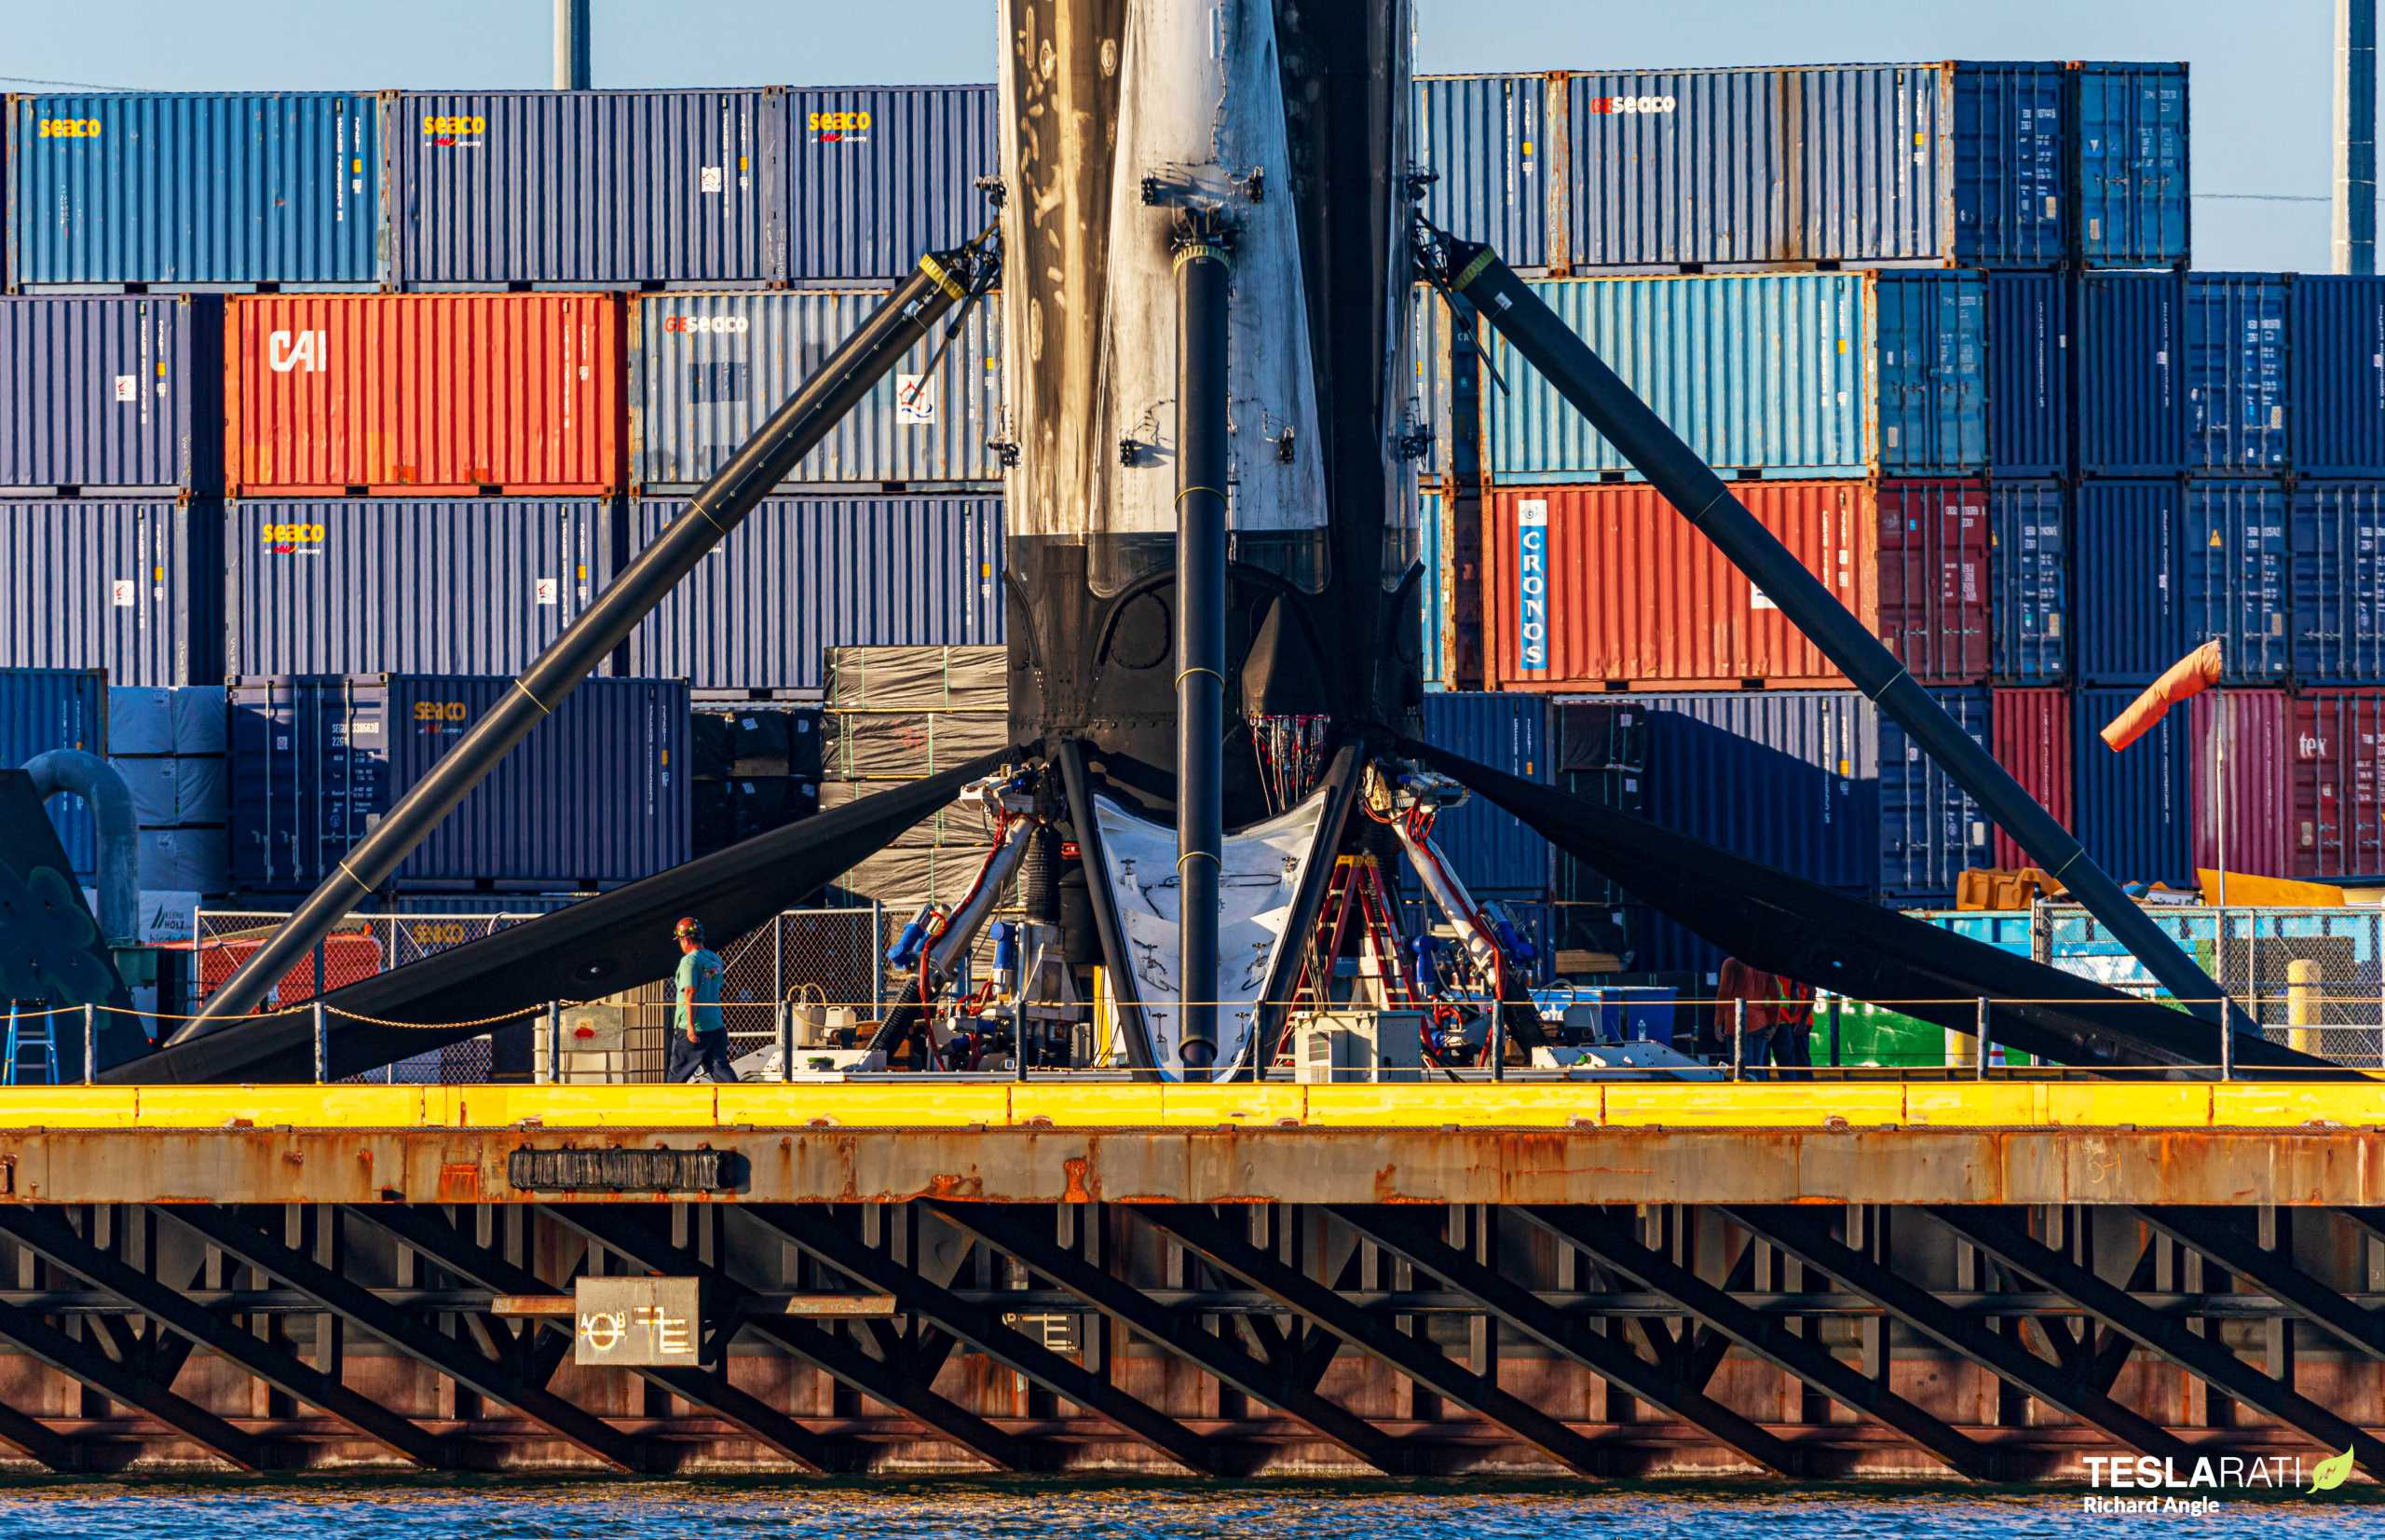 Starlink-20 Falcon 9 B1058 031421 (Richard Angle) port return 2 crop (c)